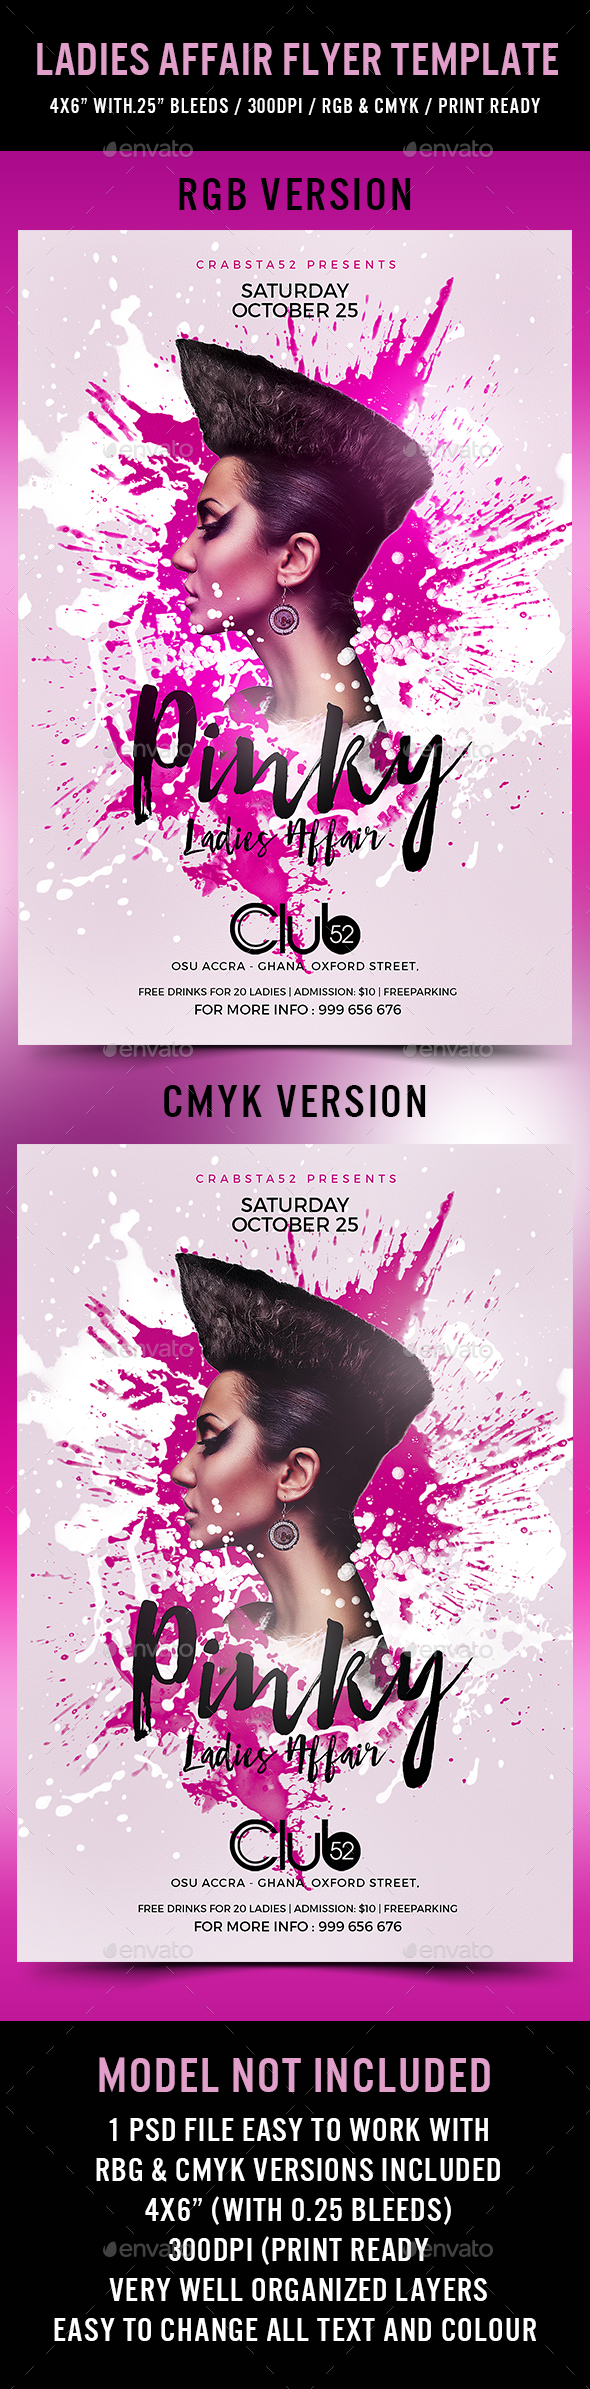 Ladies Affair Flyer Template - Flyers Print Templates